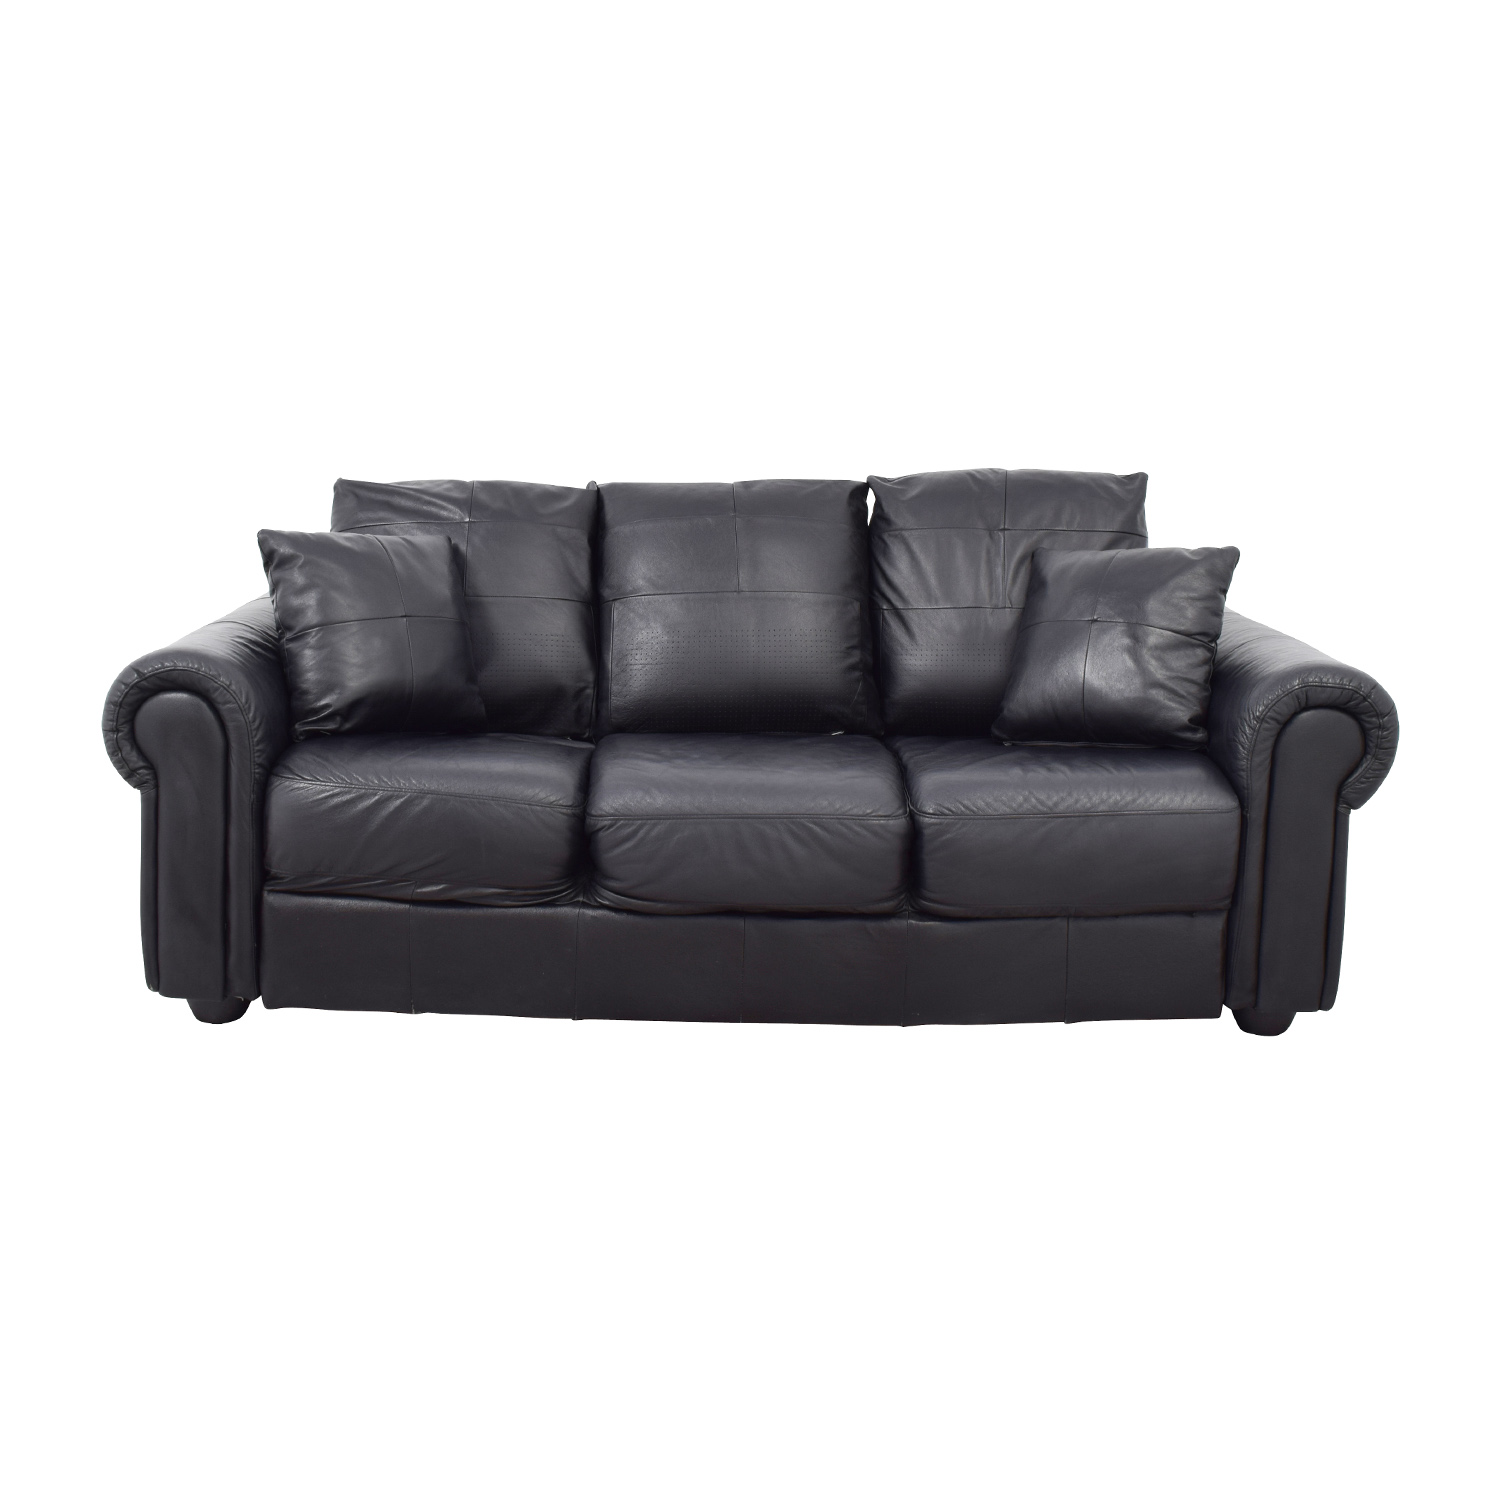 ABC Carpet and Home ABC Carpet & Home Black Leather Couch Classic Sofas